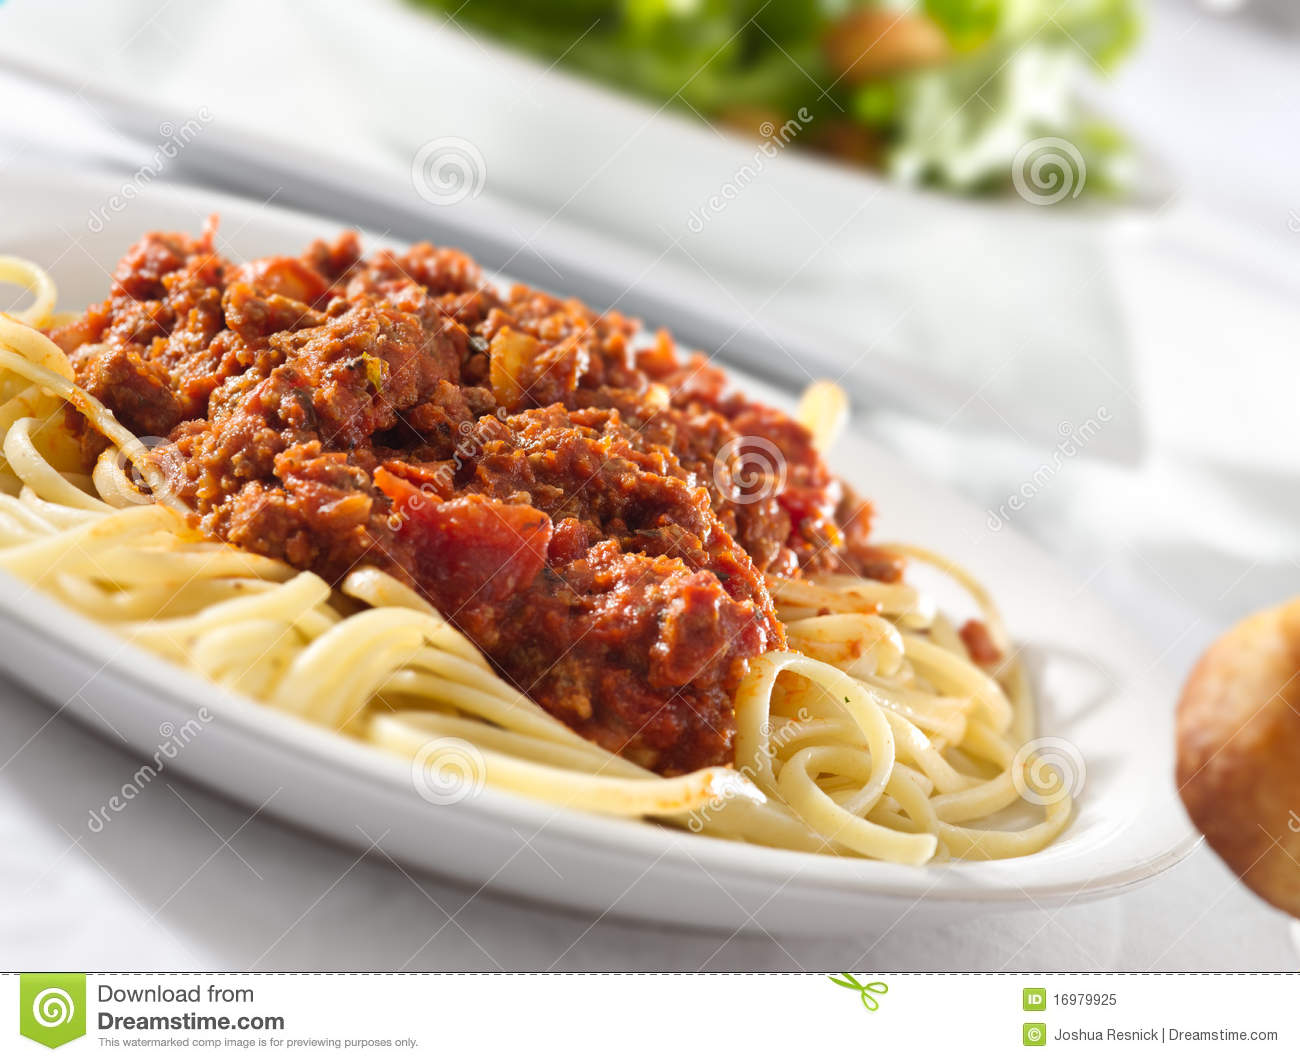 Selective focus on a plate of spaghetti pasta with tomato beef sauce.